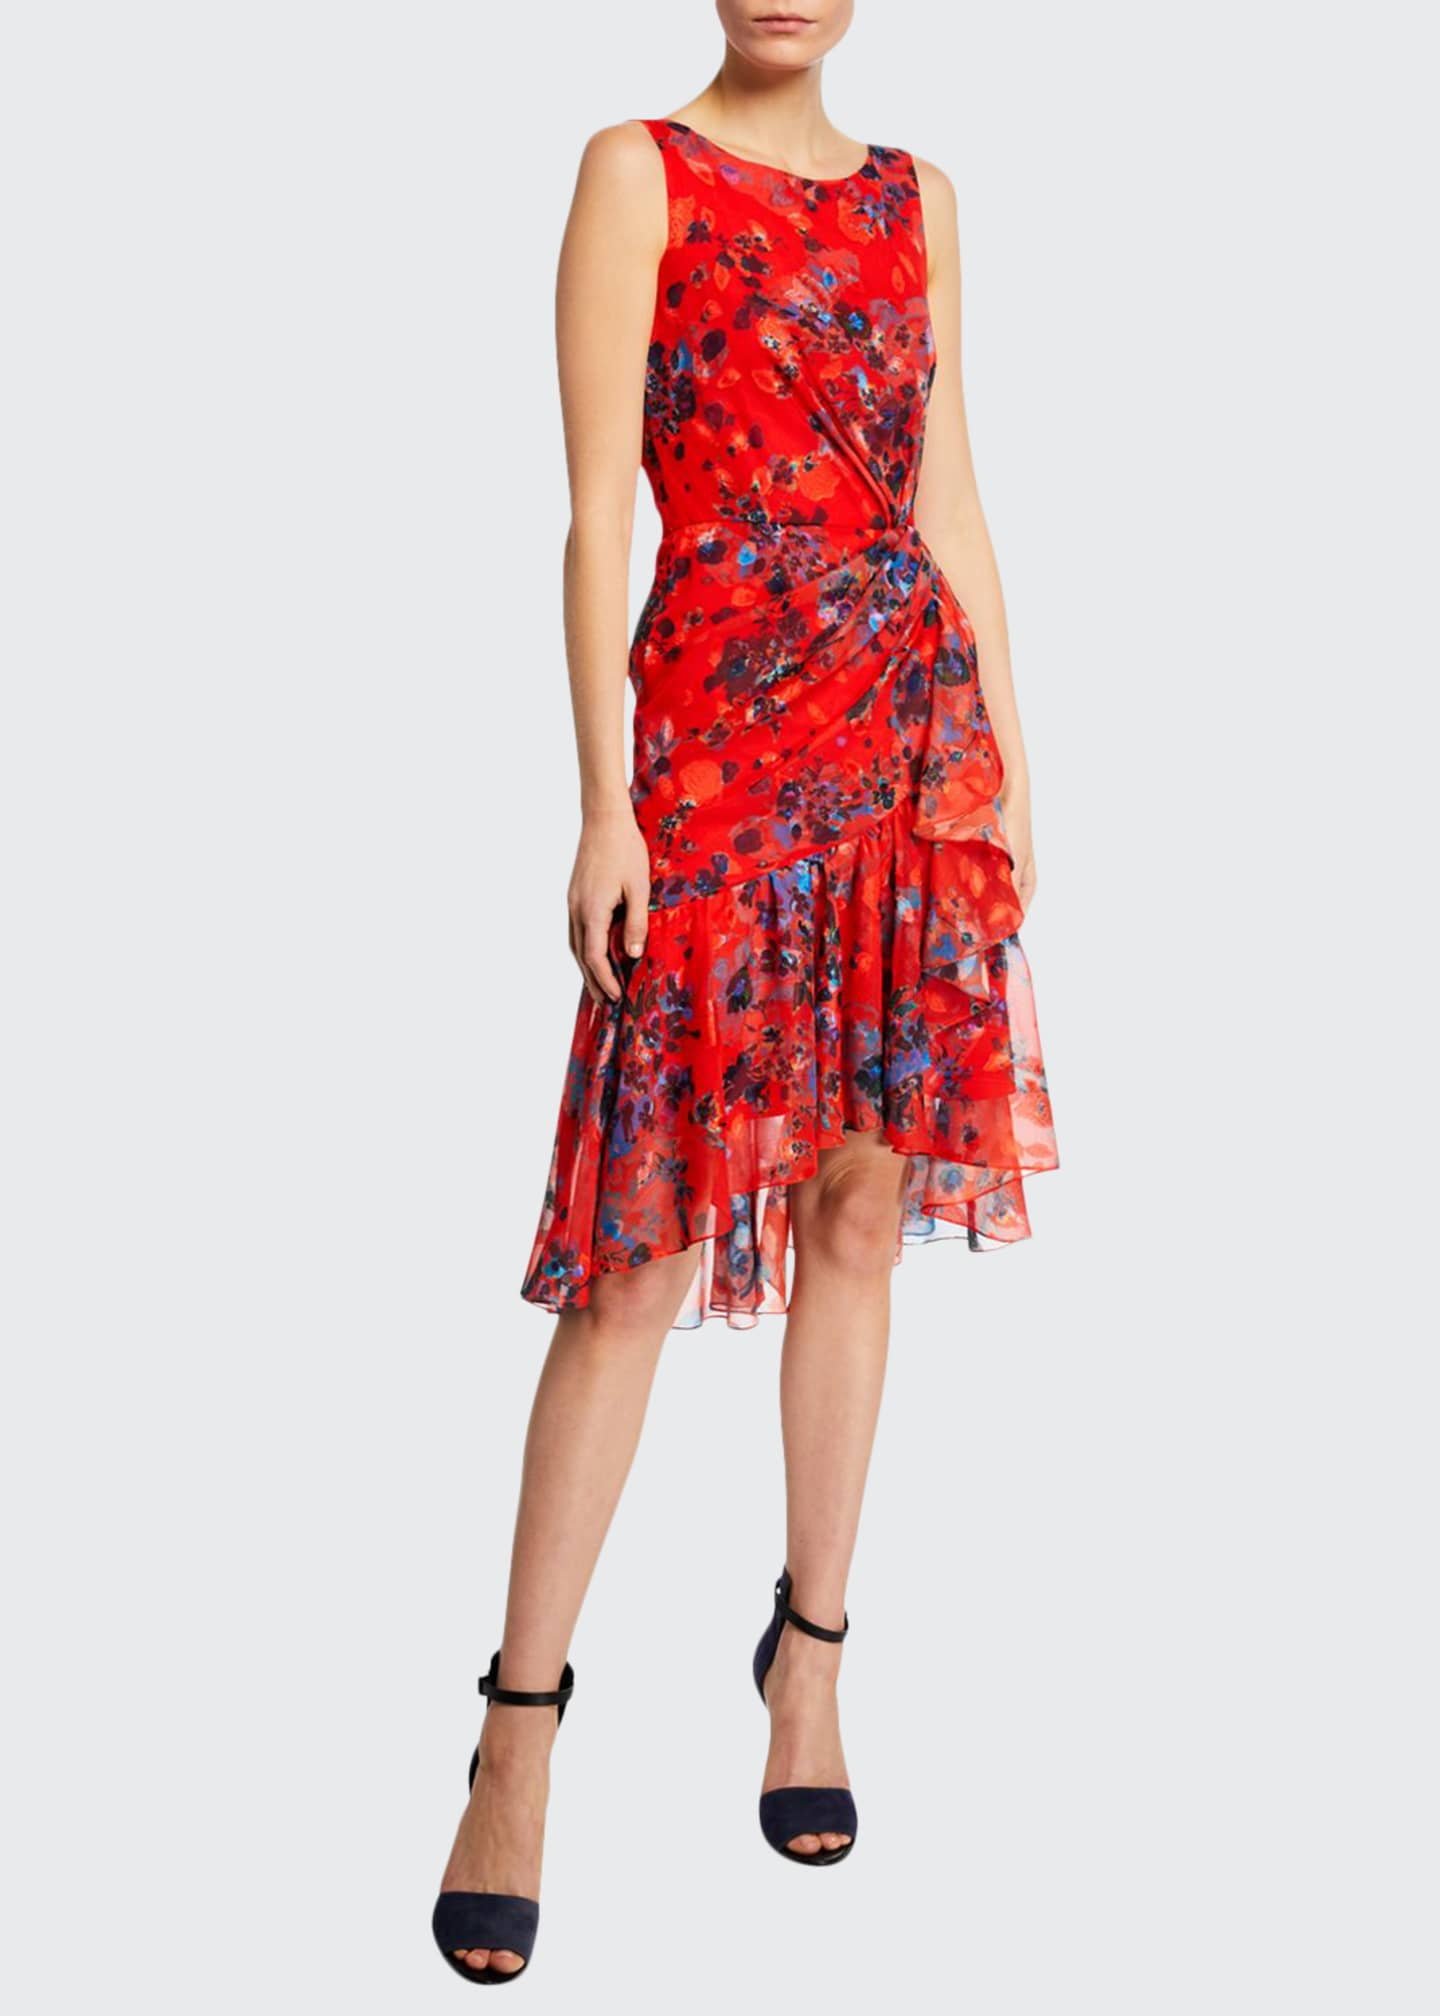 Marchesa Notte Burnout Floral-Print Sleeveless Chiffon Dress w/